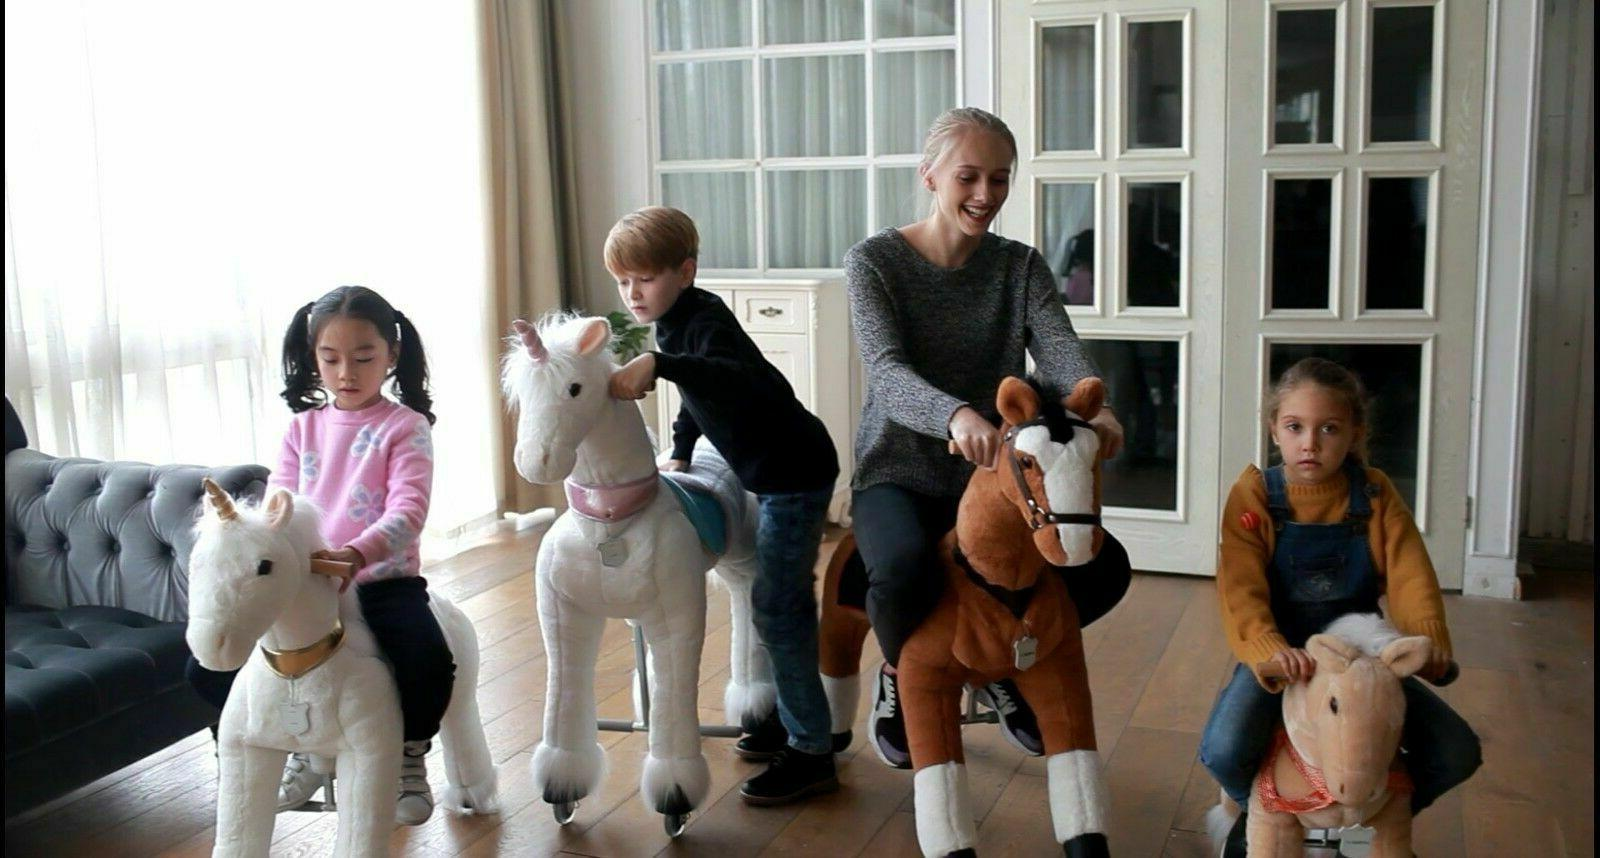 UFREE Horse 44''Large, Ride on anmals as Gift Kids,6-Adult,White